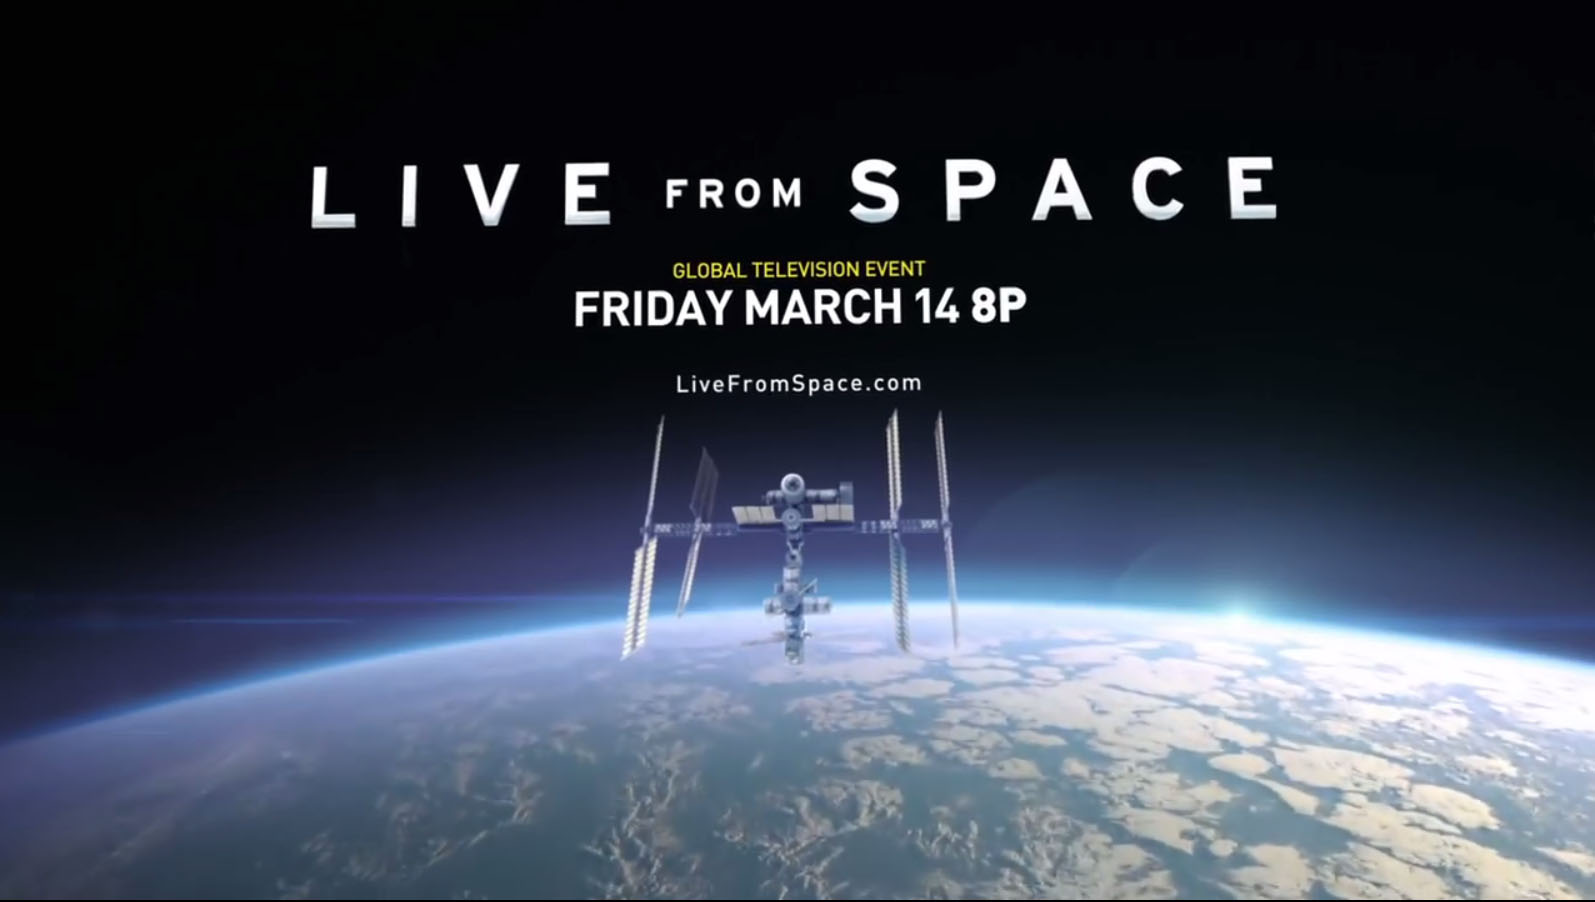 'Live from Space': National Geographic Brings Astronaut Life to Earth on TV Tonight